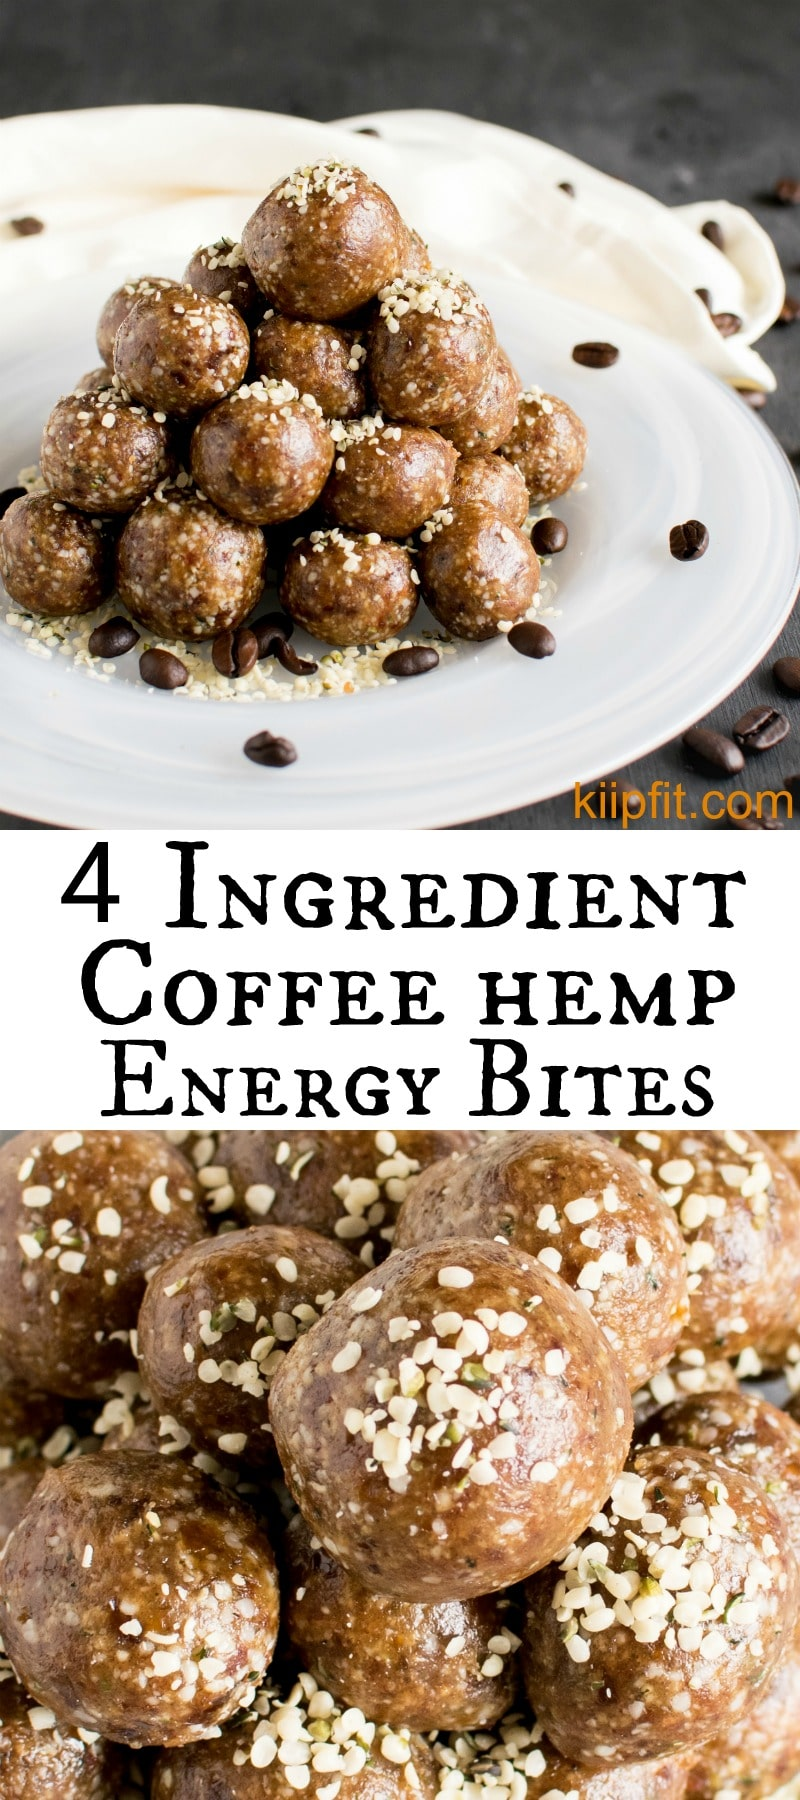 4 Ingredient Coffee Hemp Energy Bites are easy and perfect to satisfy sweet tooth in a healthy way. In about 5 minutes these energy bites can be prepared [ vegan + GF + Paleo ] kiipfit.com